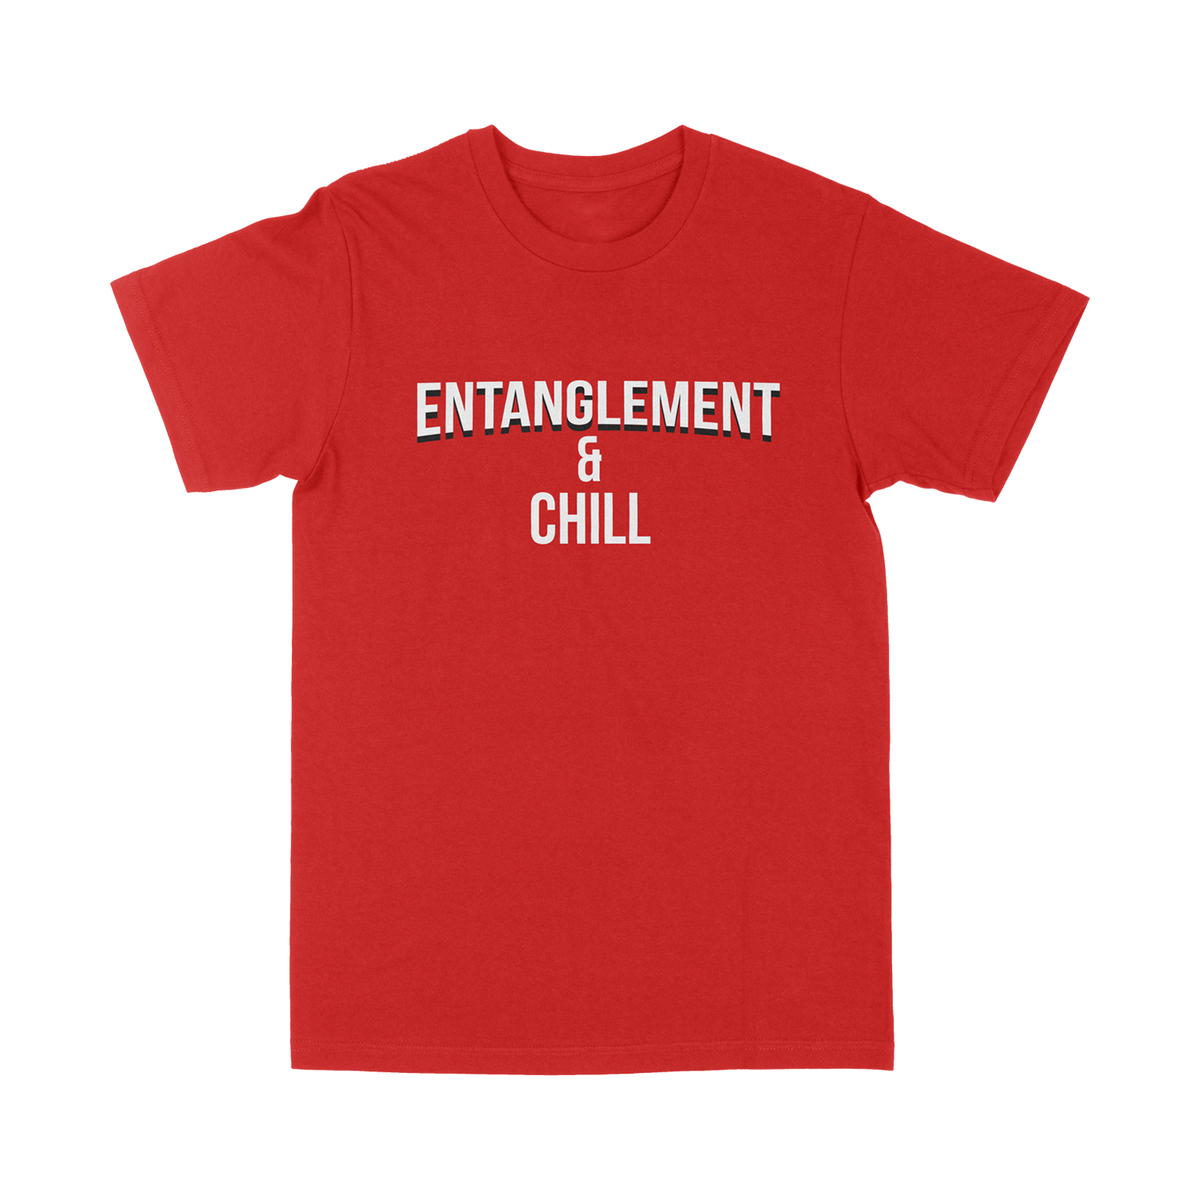 Entanglement & Chill Red T-Shirt